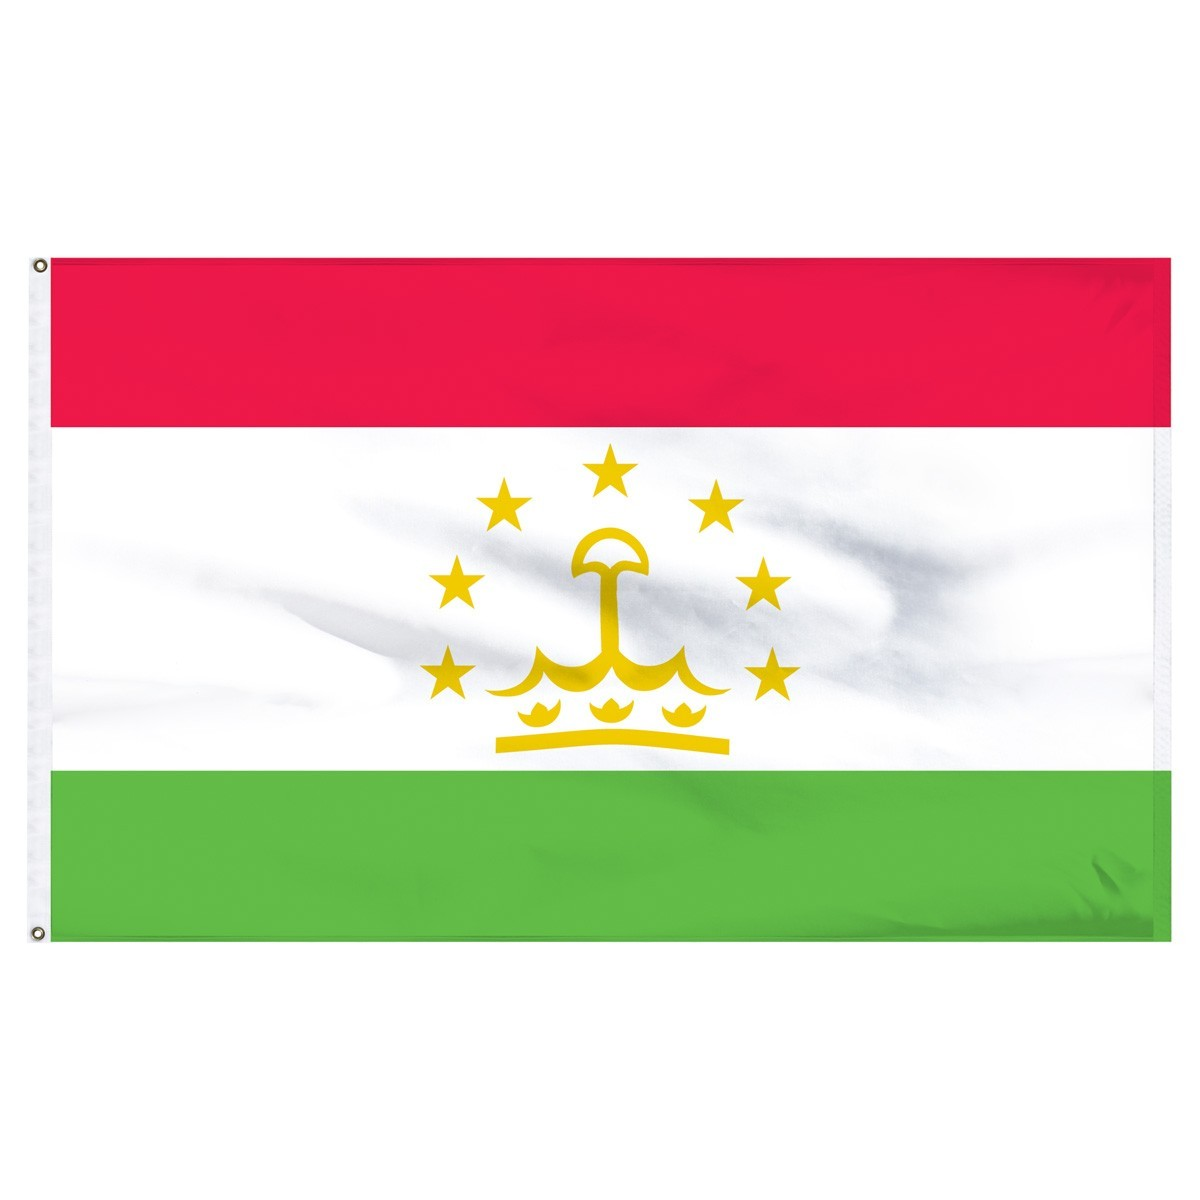 Tajikistan 5' x 8' Outdoor Nylon Flag